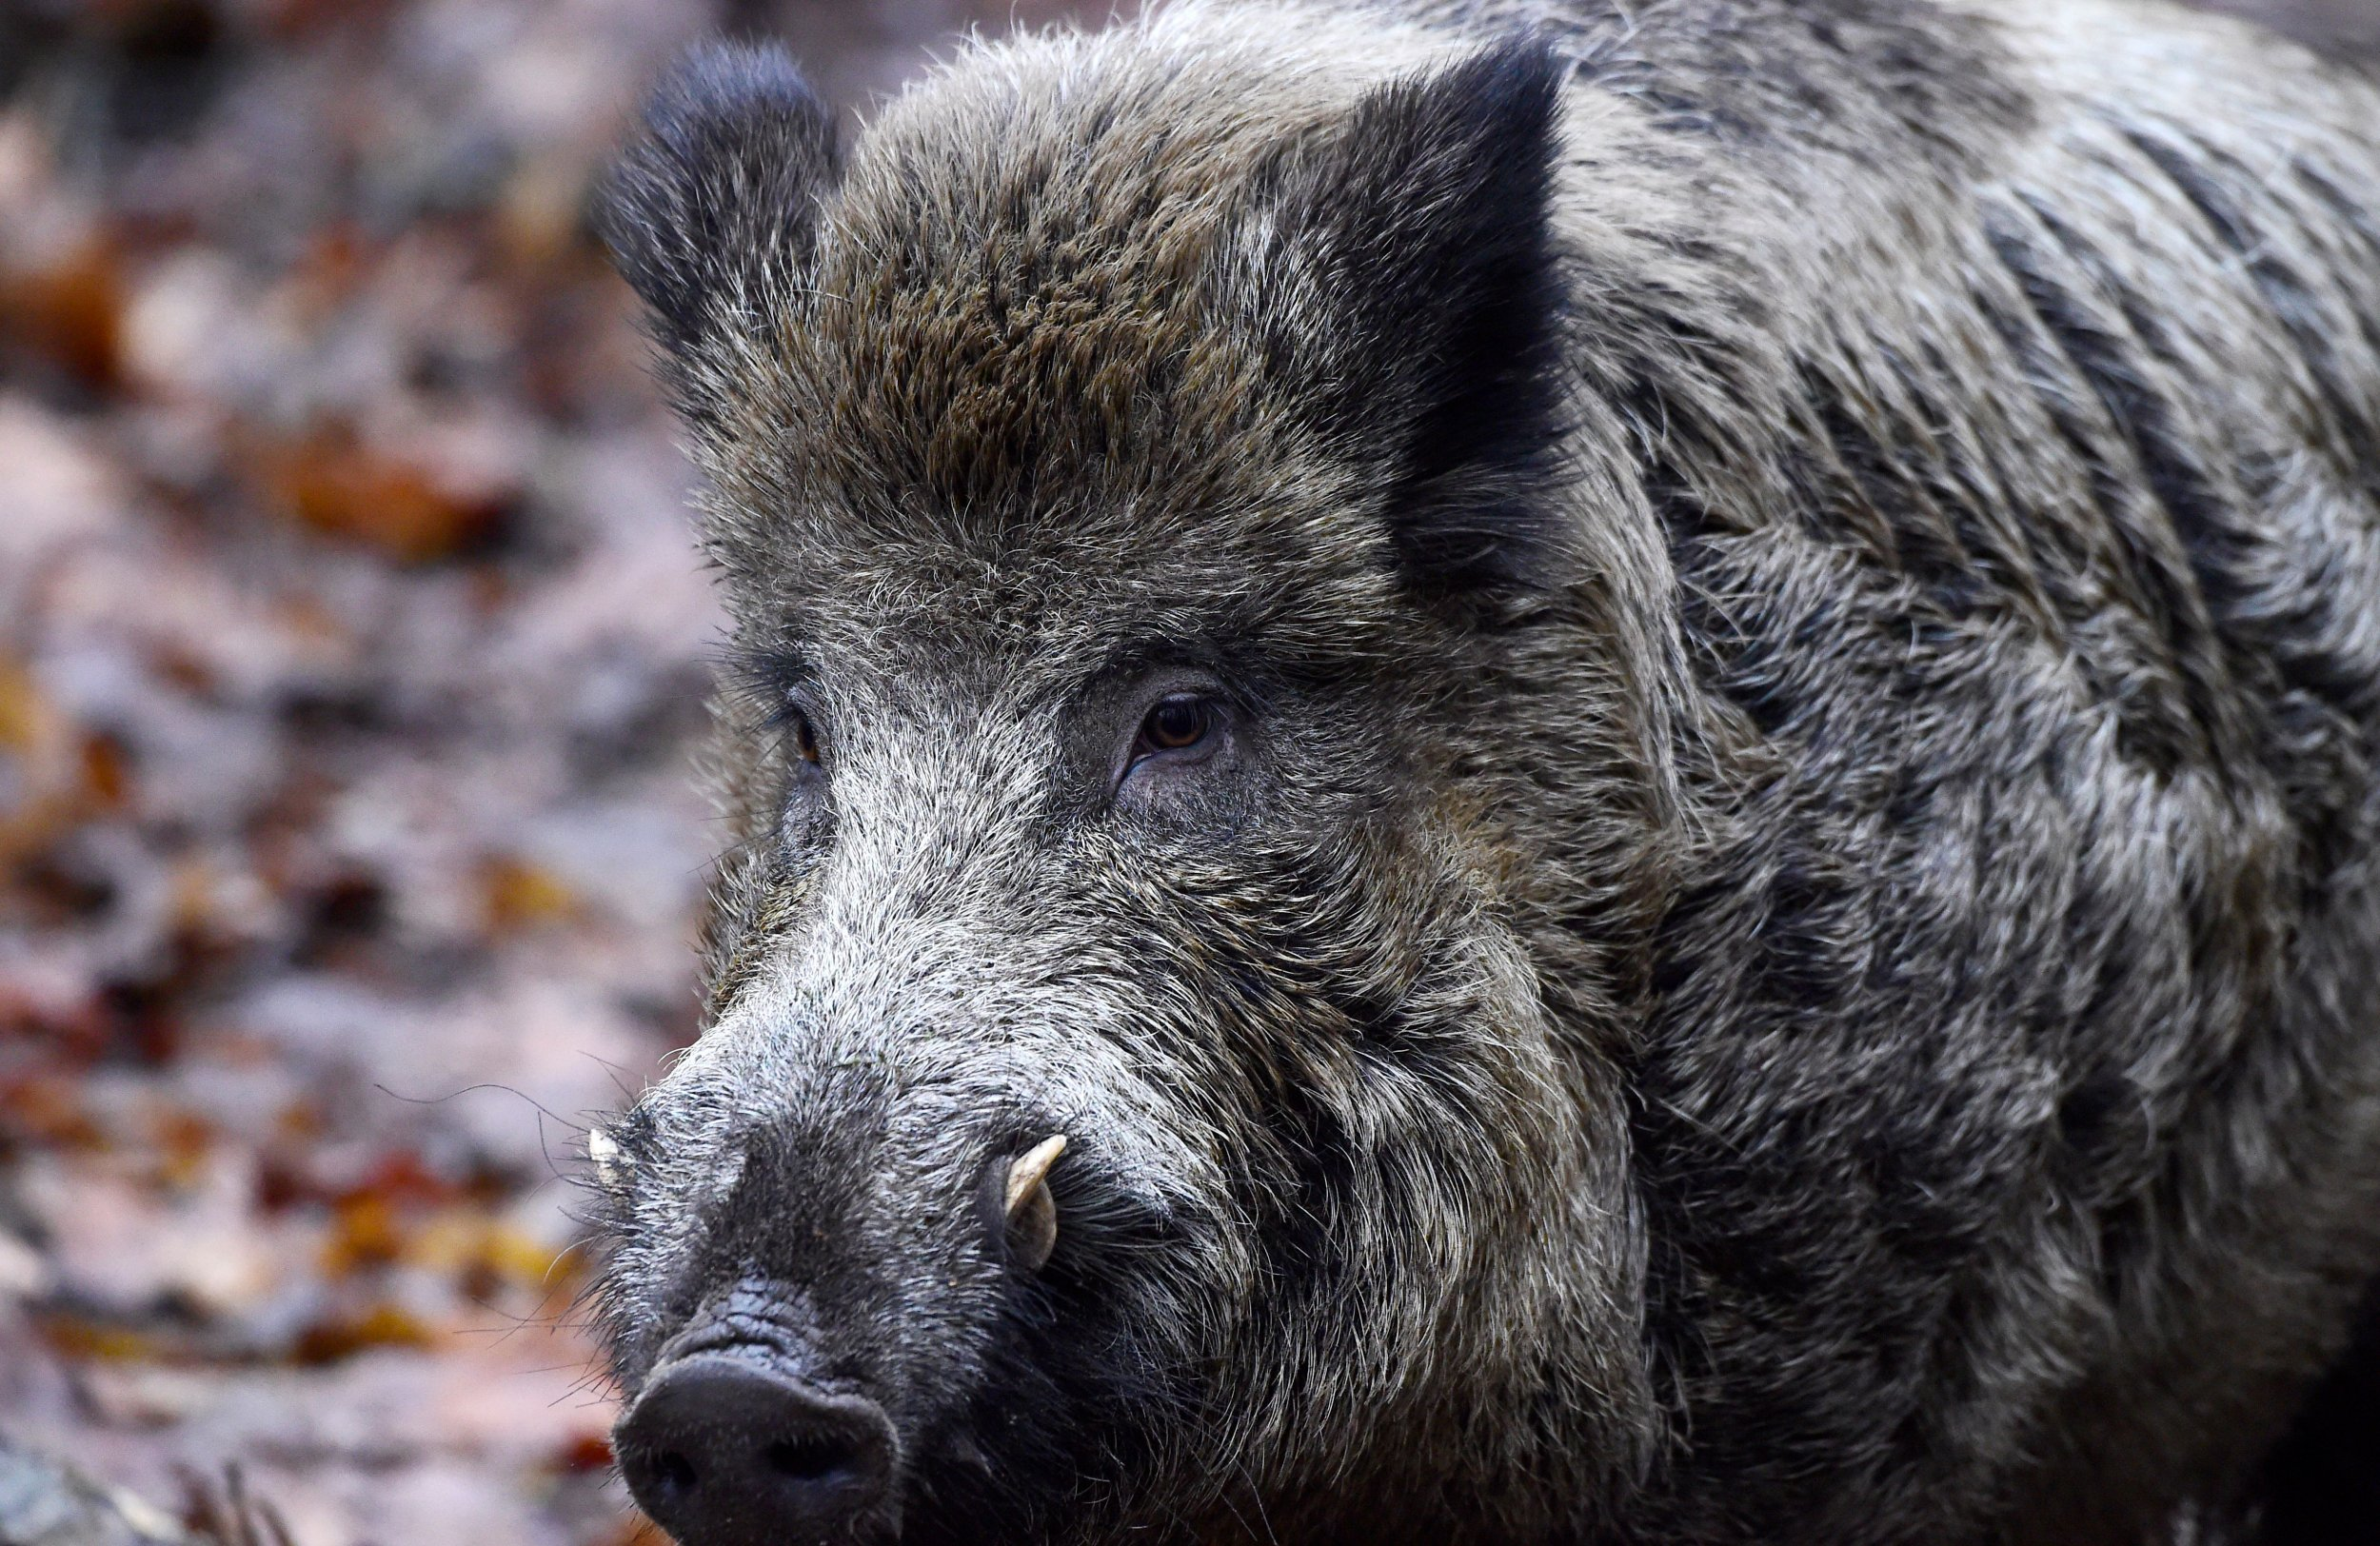 Man Loses Finger in Wild Boar Attack During His Morning Dog Walk